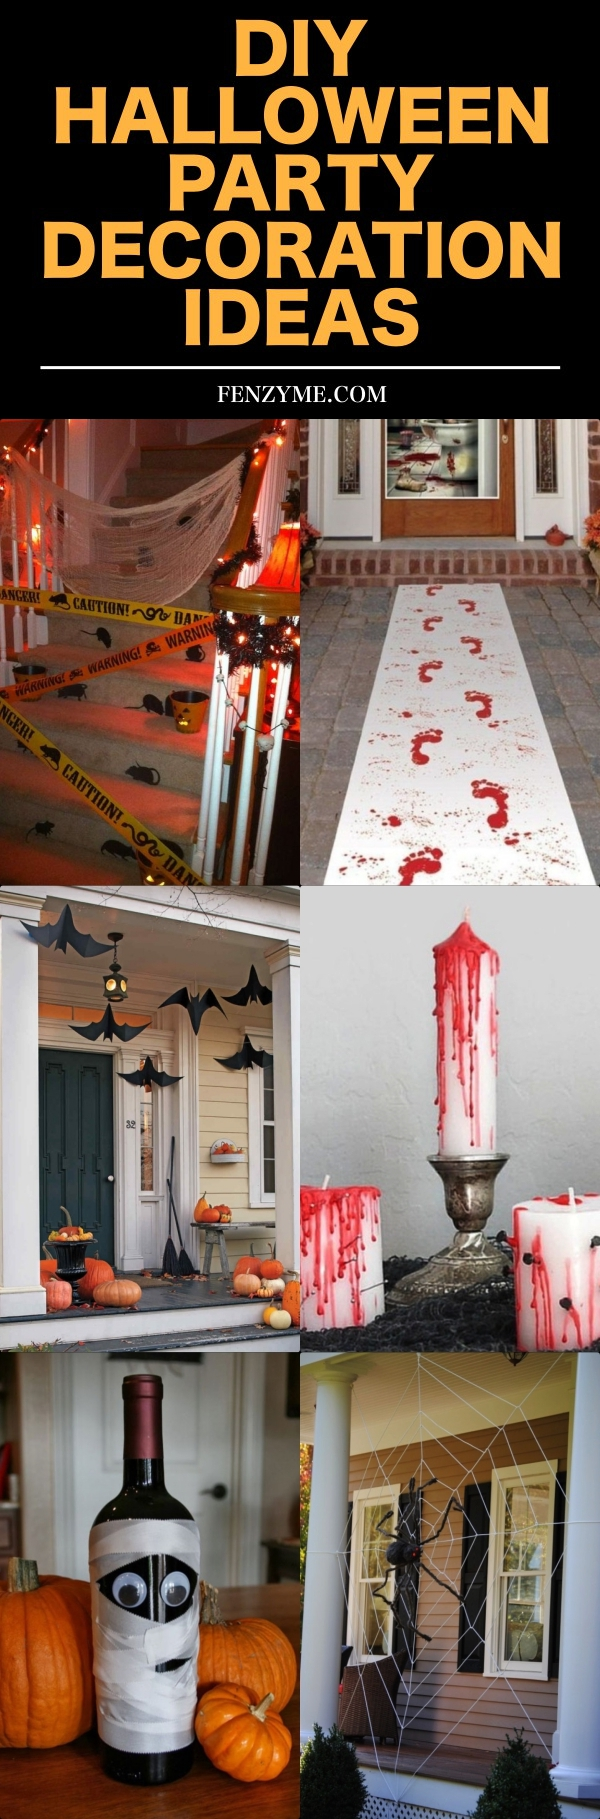 DIY HALLOWEEN PARTY DECORATION IDEAS